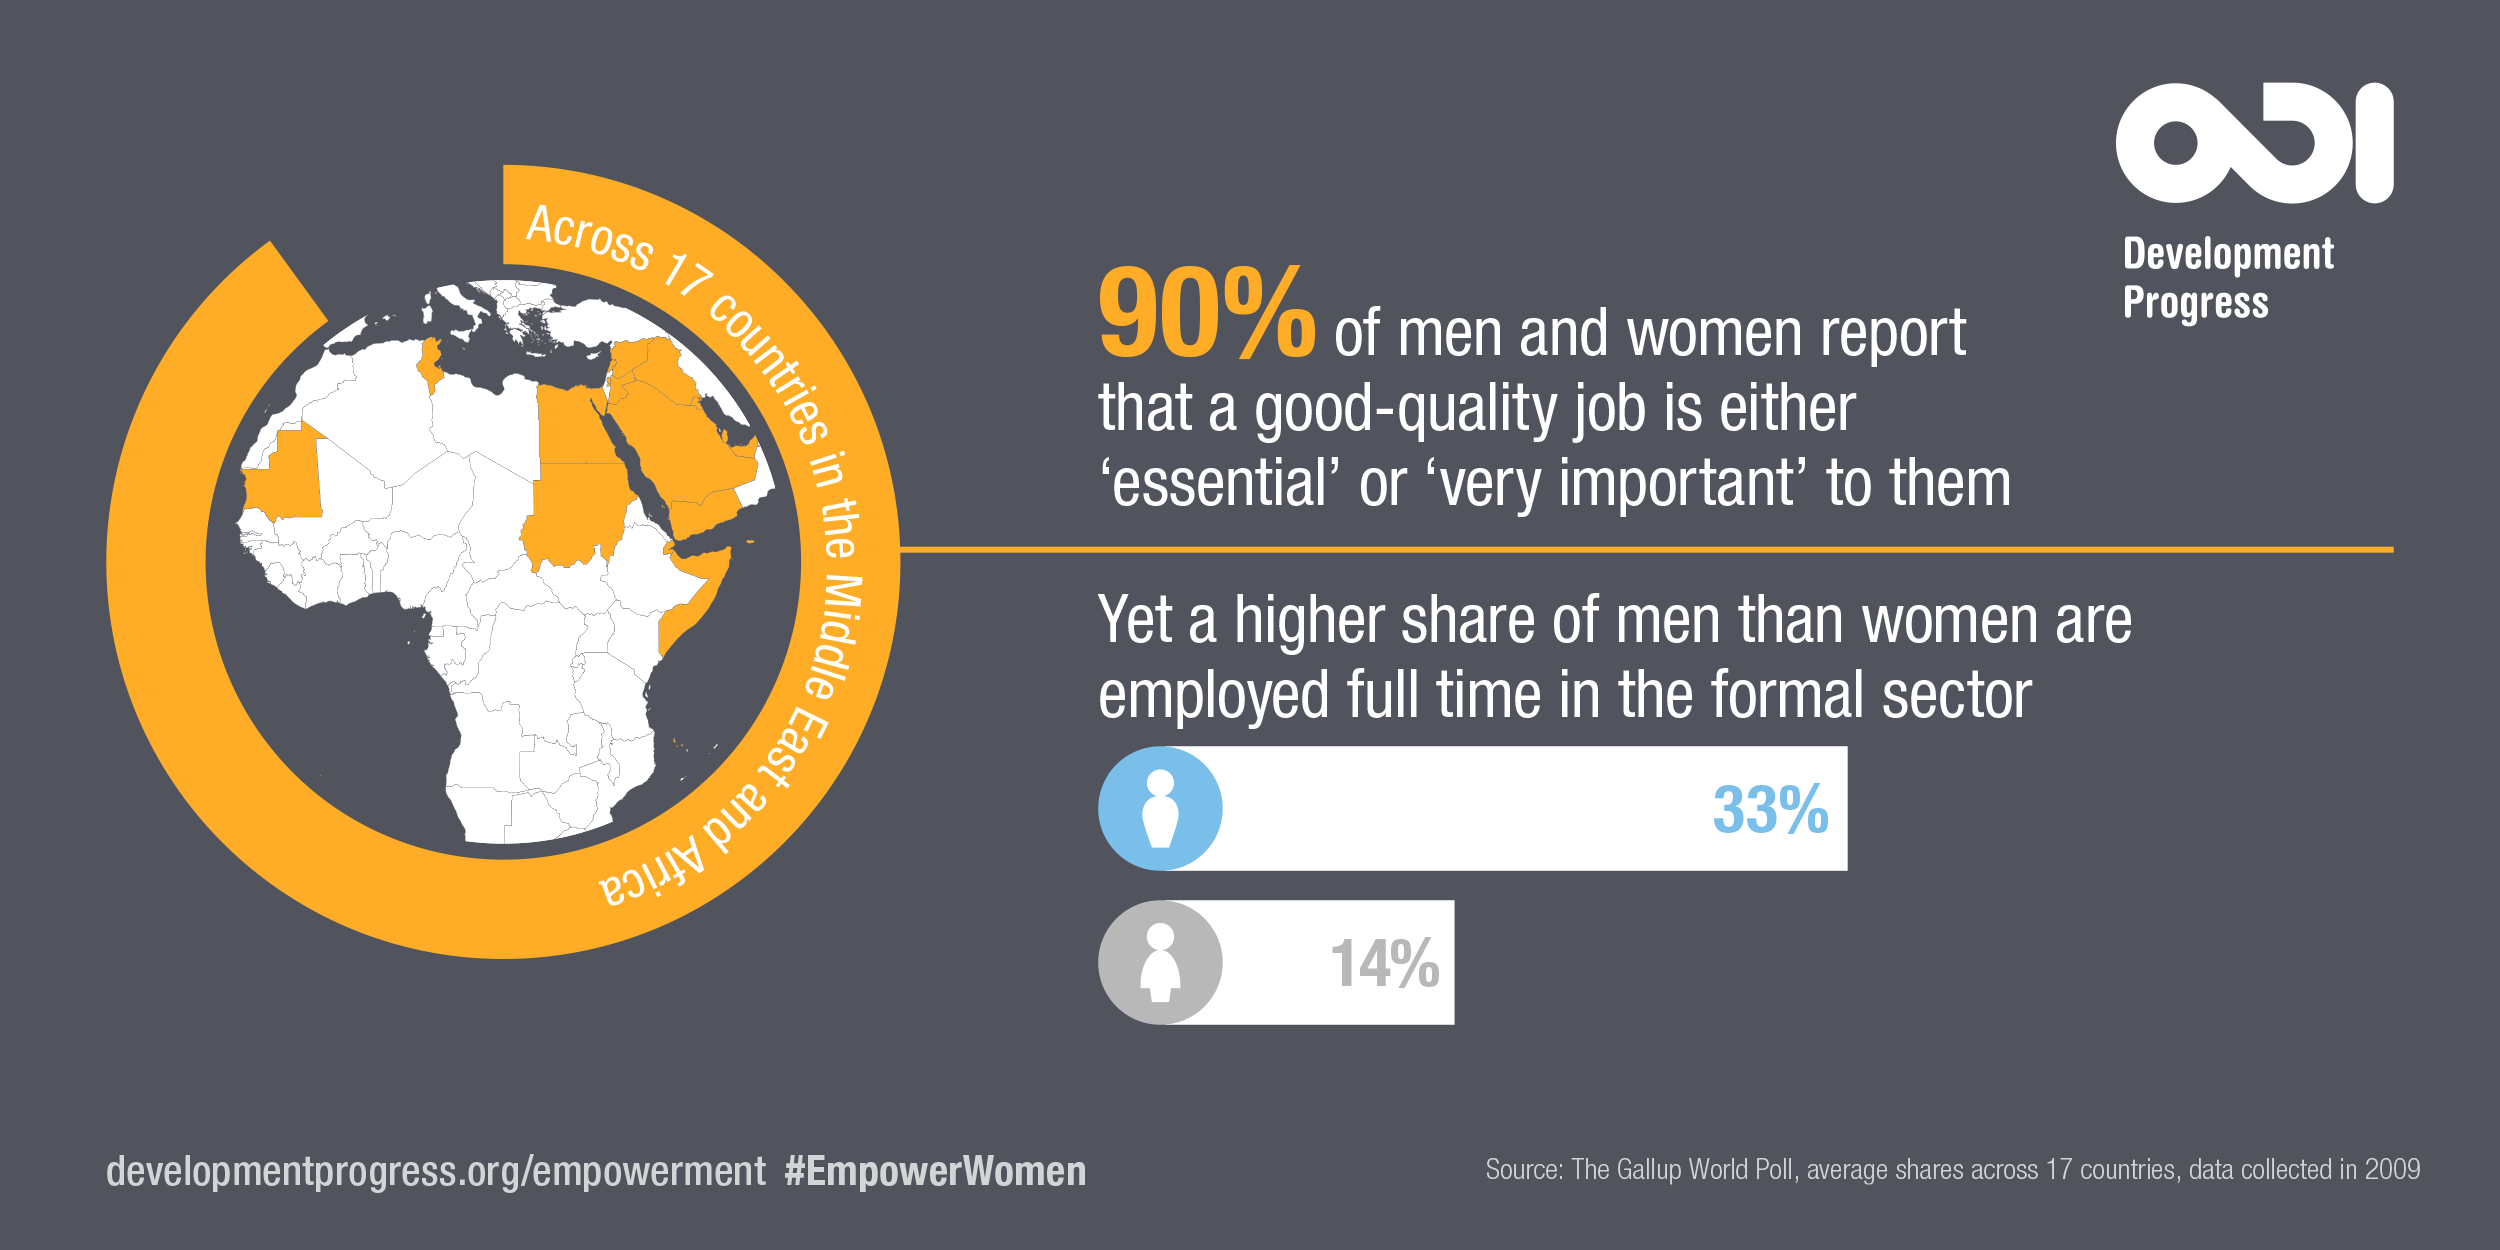 90% of men and women report that a good-quality job is either 'important' or 'very important' to them